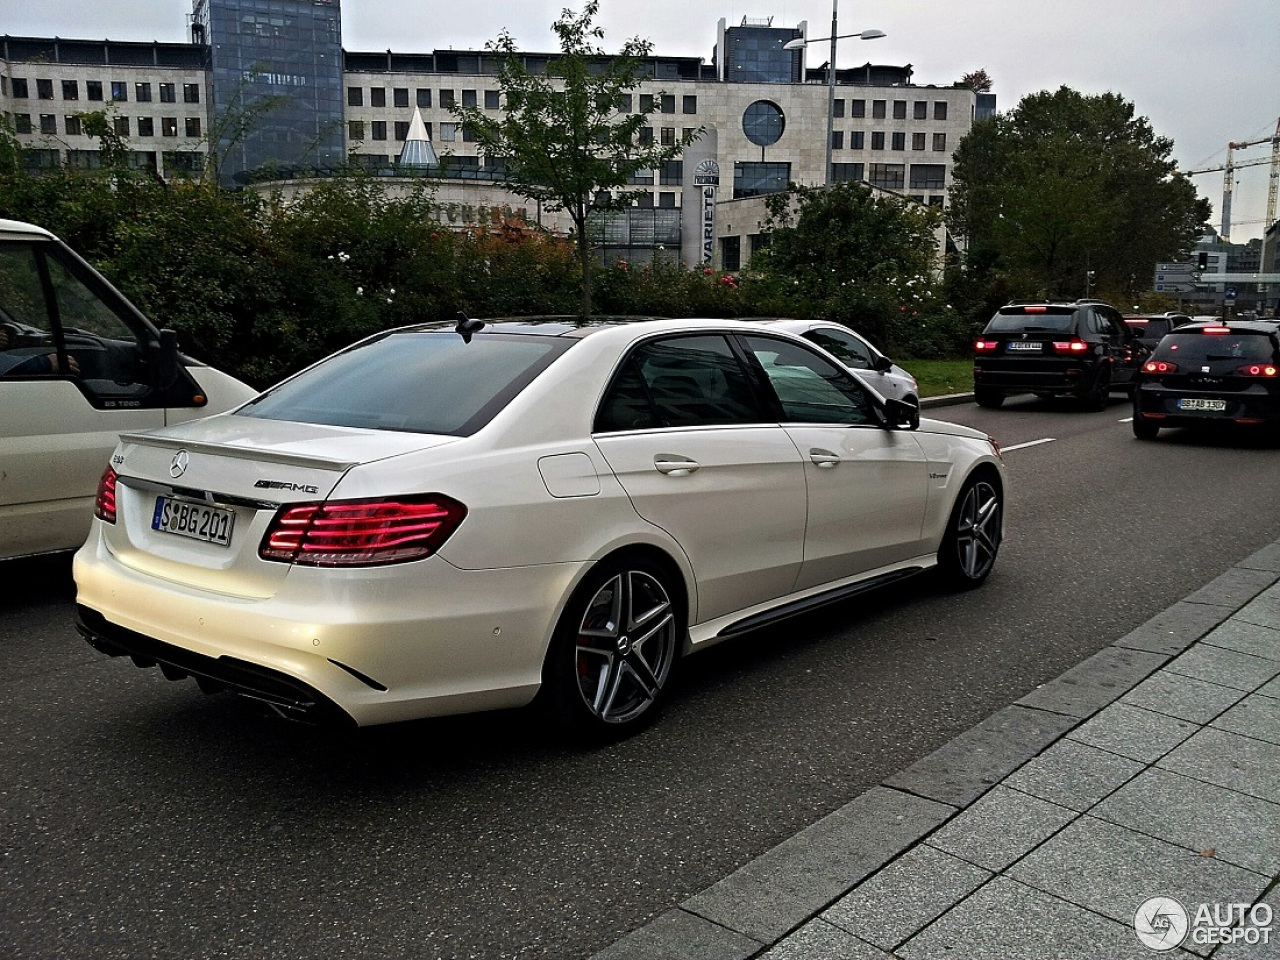 Mercedes Benz E 2017 Price >> Mercedes-Benz E 63 AMG S W212 - 19 December 2013 - Autogespot